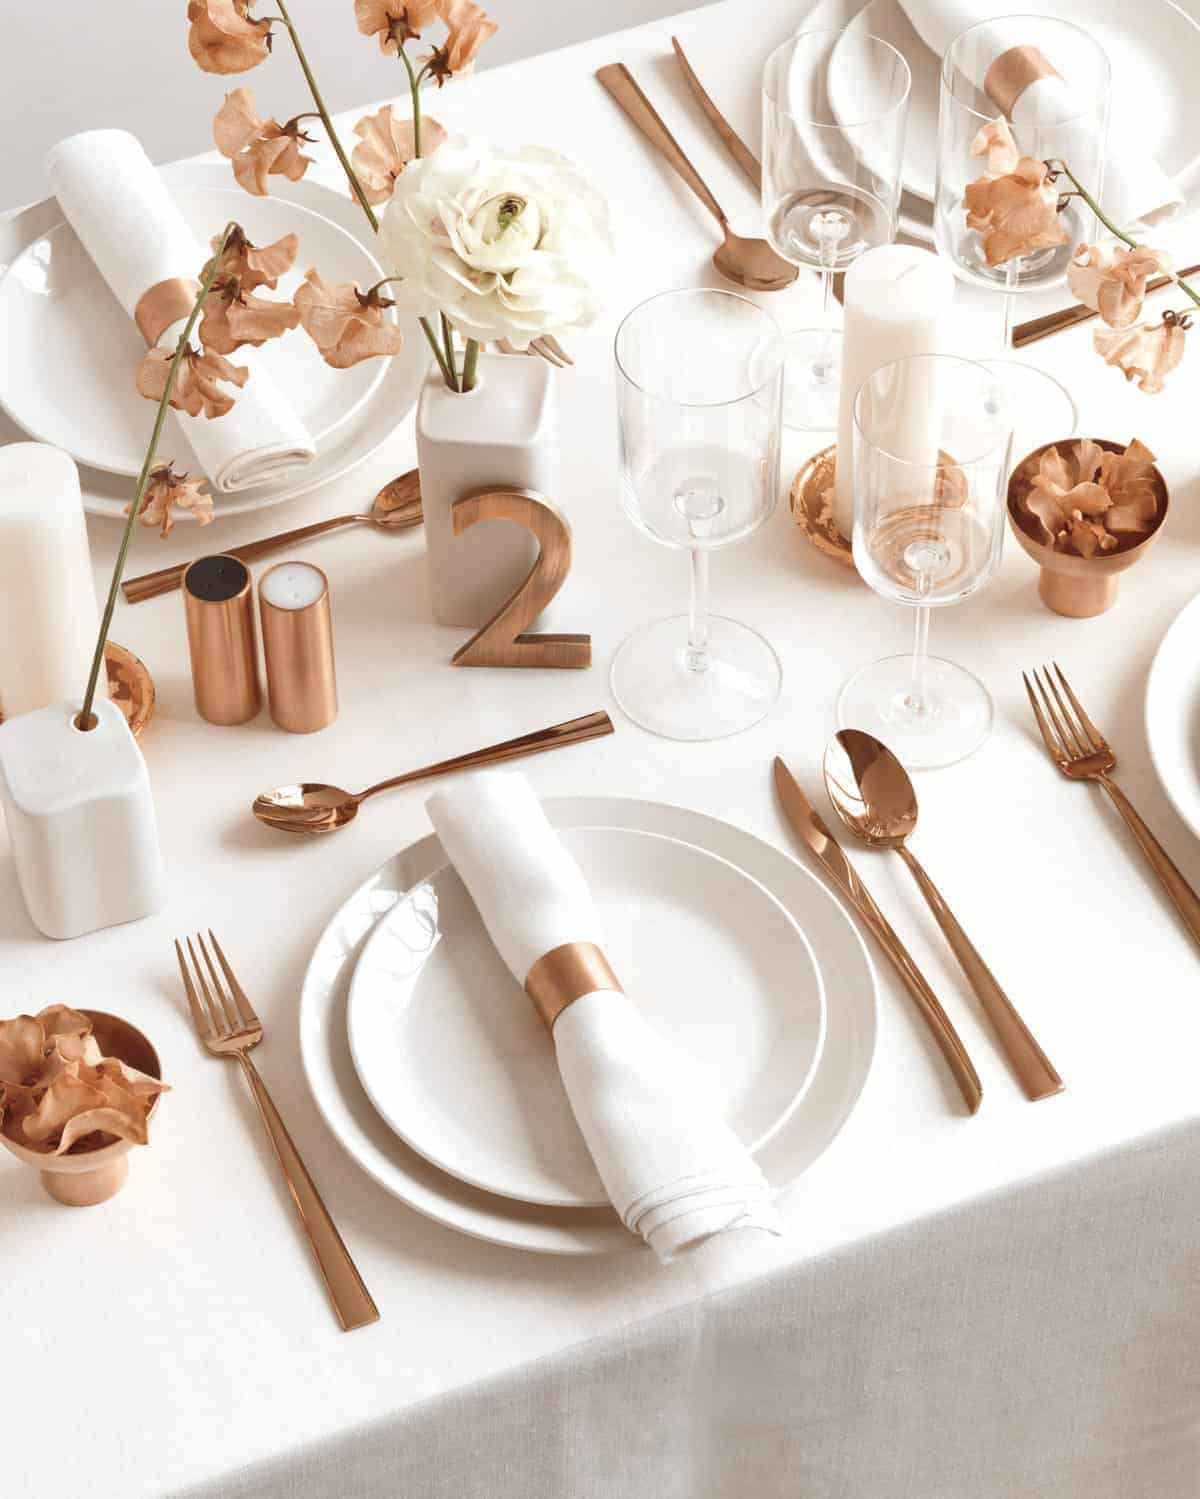 White and copper table setting. White plates and copper flatware.